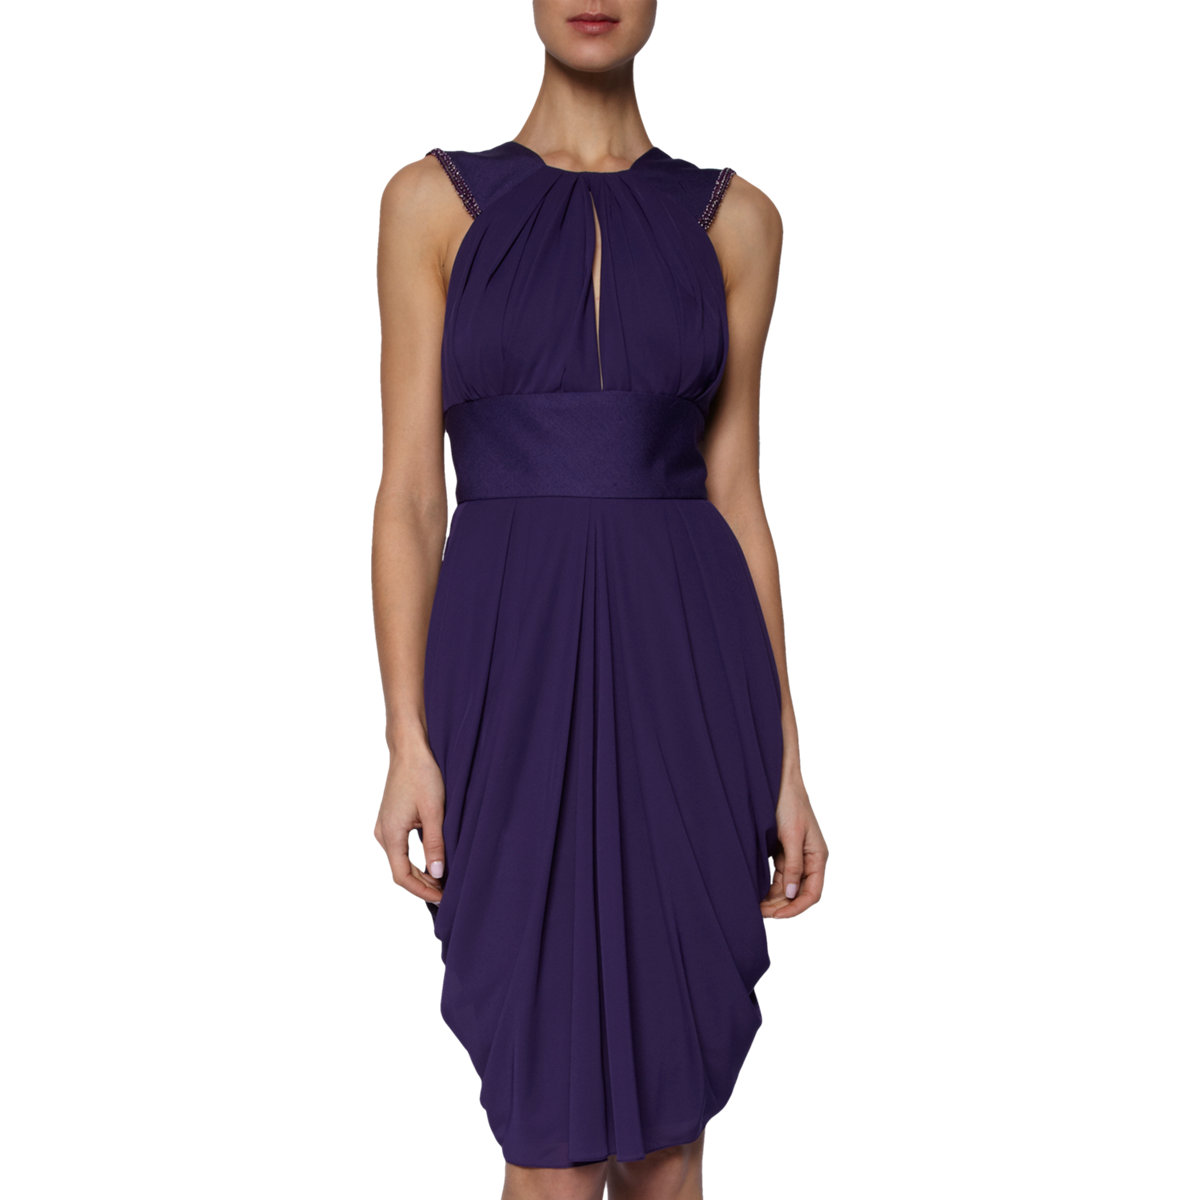 J. Mendel Beaded Halter Dress in Purple -